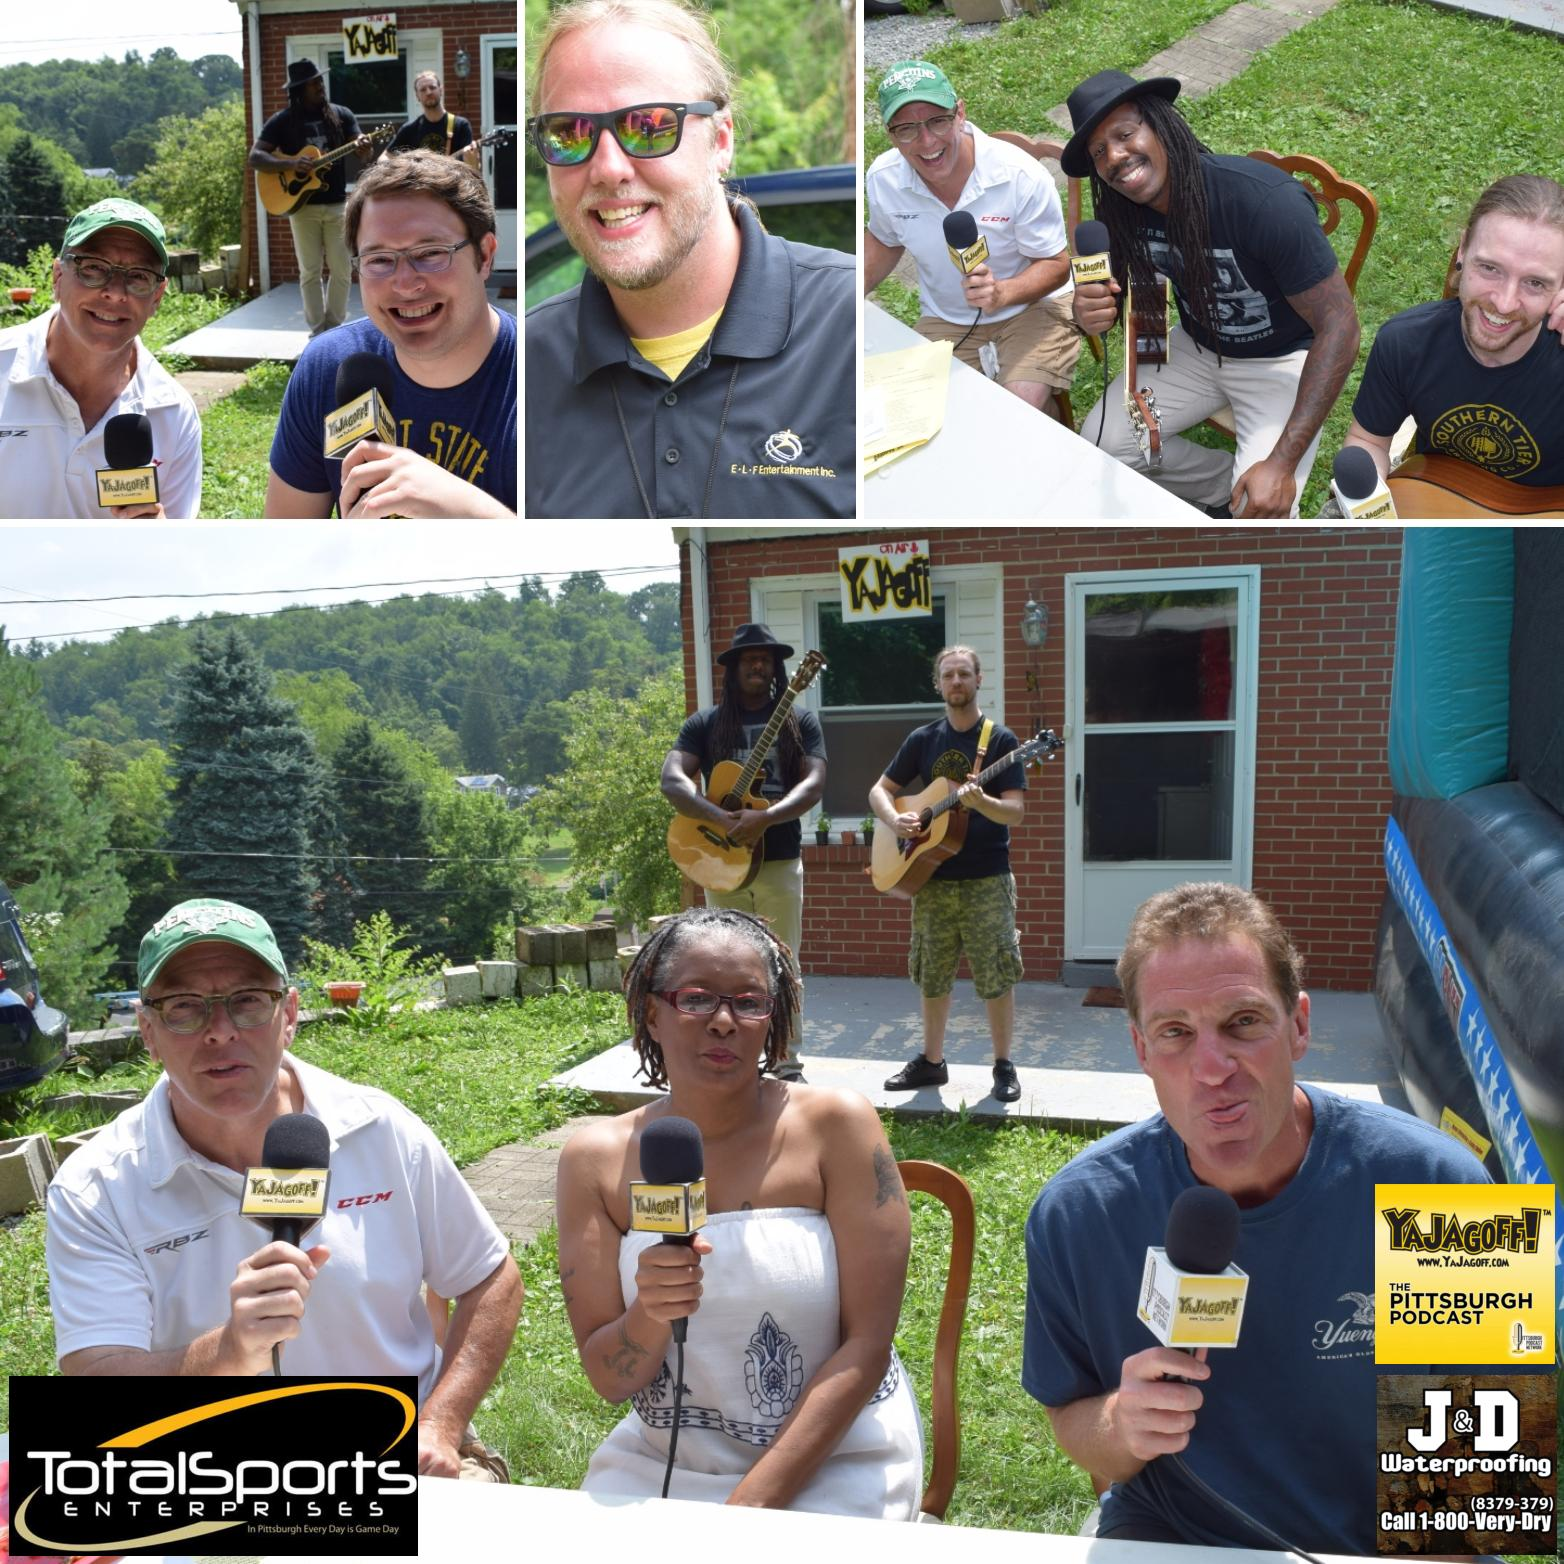 YaJagoff Podcast, Episode 77 – The First of 4 J & D Waterproofing Porch Tours!